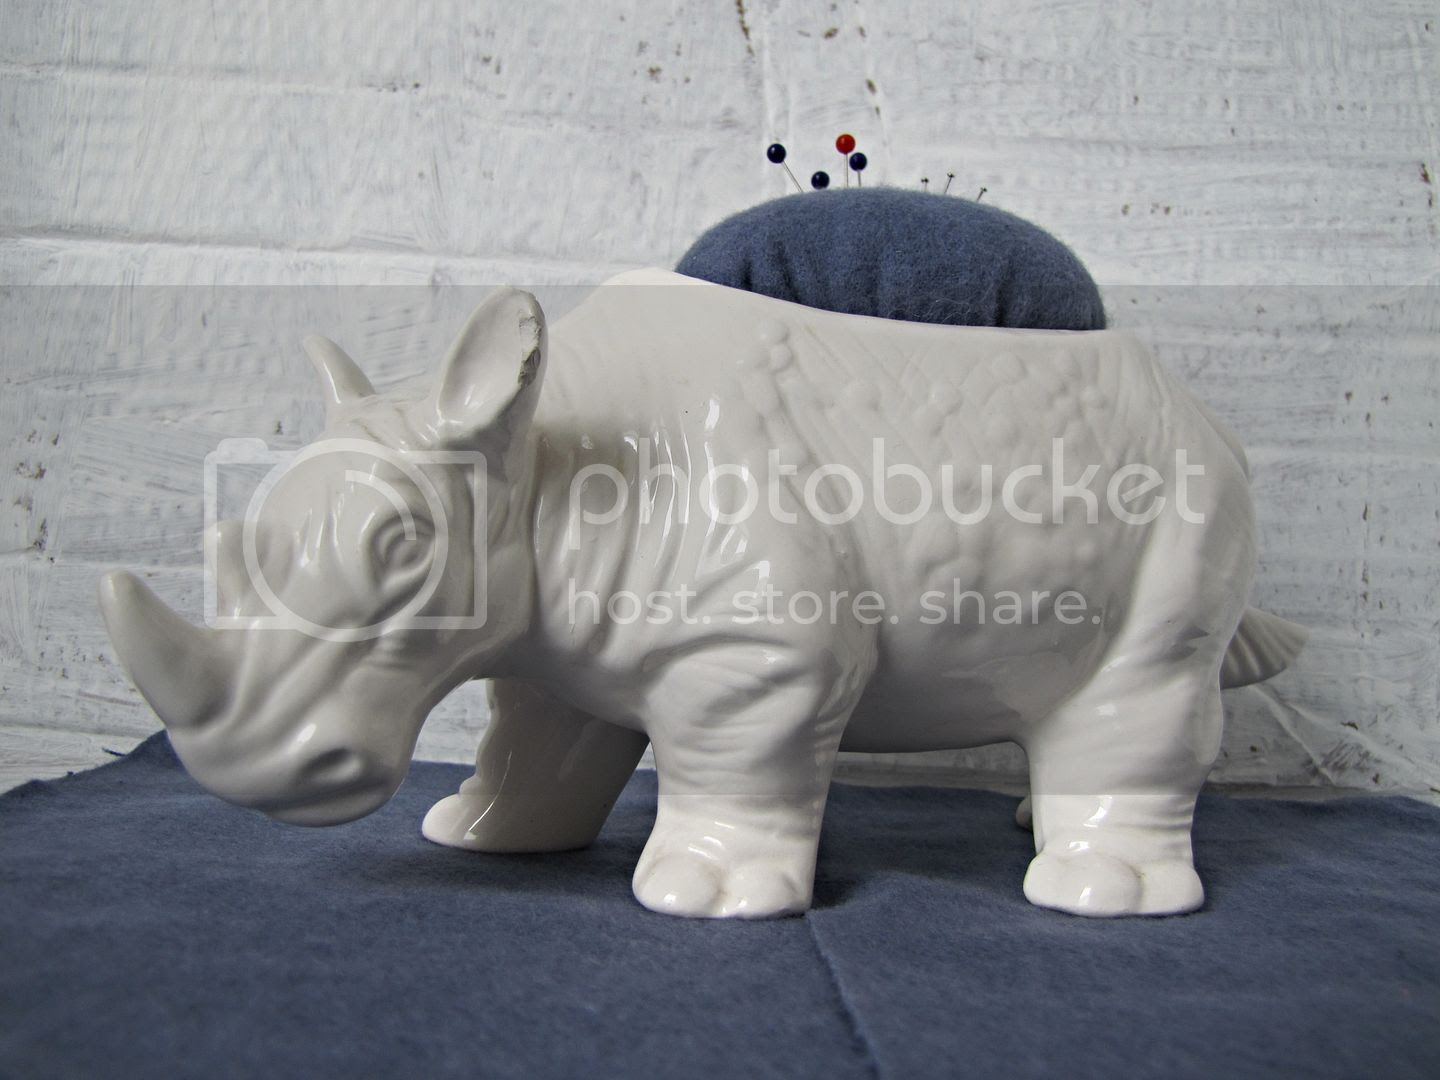 rhino pincushion from floral container - Indietutes.blogspot.com photo b0e5193a-dd25-4f7f-a05d-2e0b941ef9b5.jpg